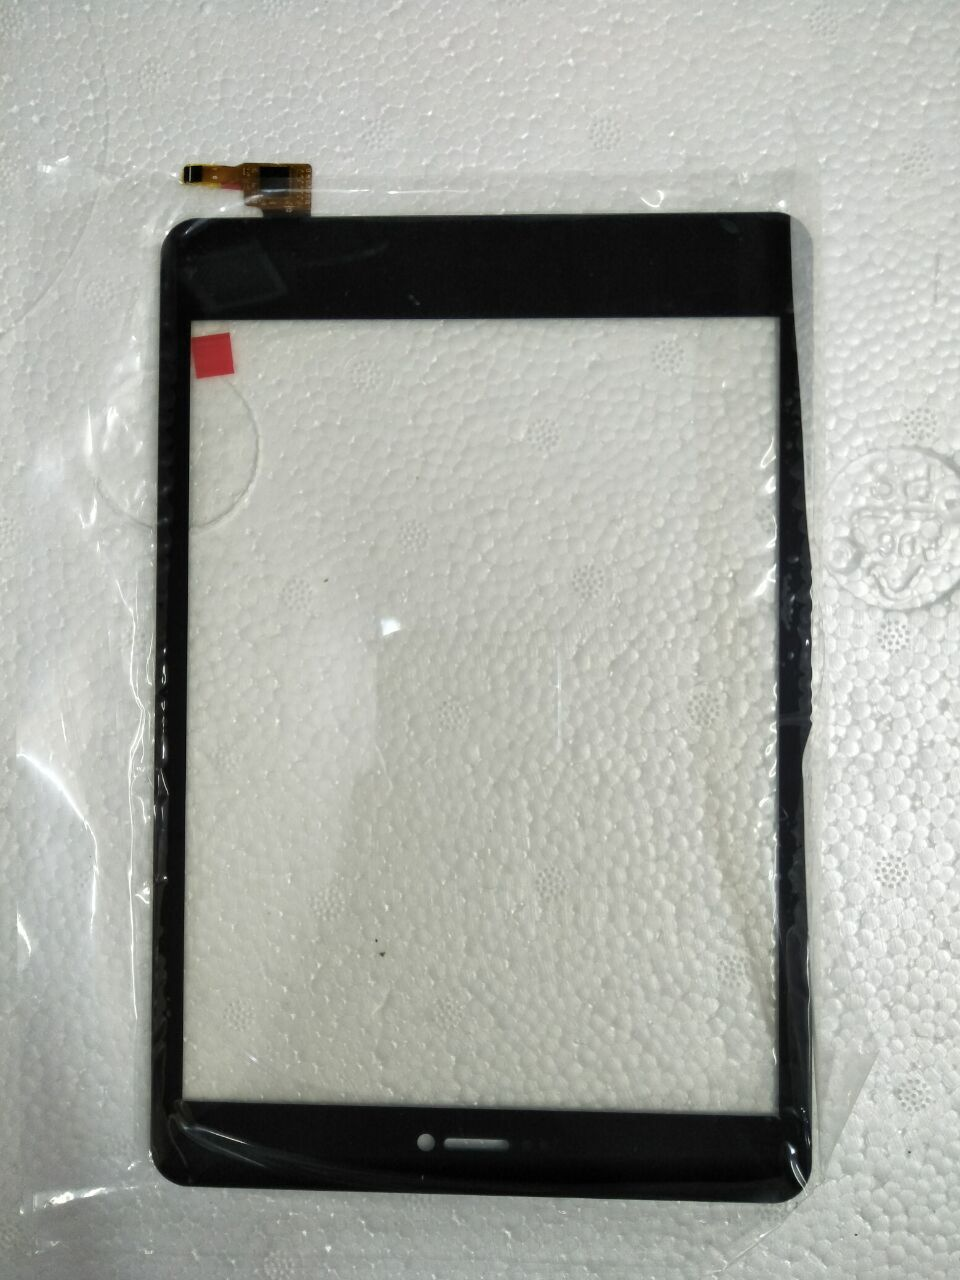 New For 7.85 inch Tablet 078135-01a-v1 Touch Screen Touch Panel digitizer Glass Sensor Replacement Free Shipping for new mglctp 701271 yj371fpc v1 replacement touch screen digitizer glass 7 inch black white free shipping